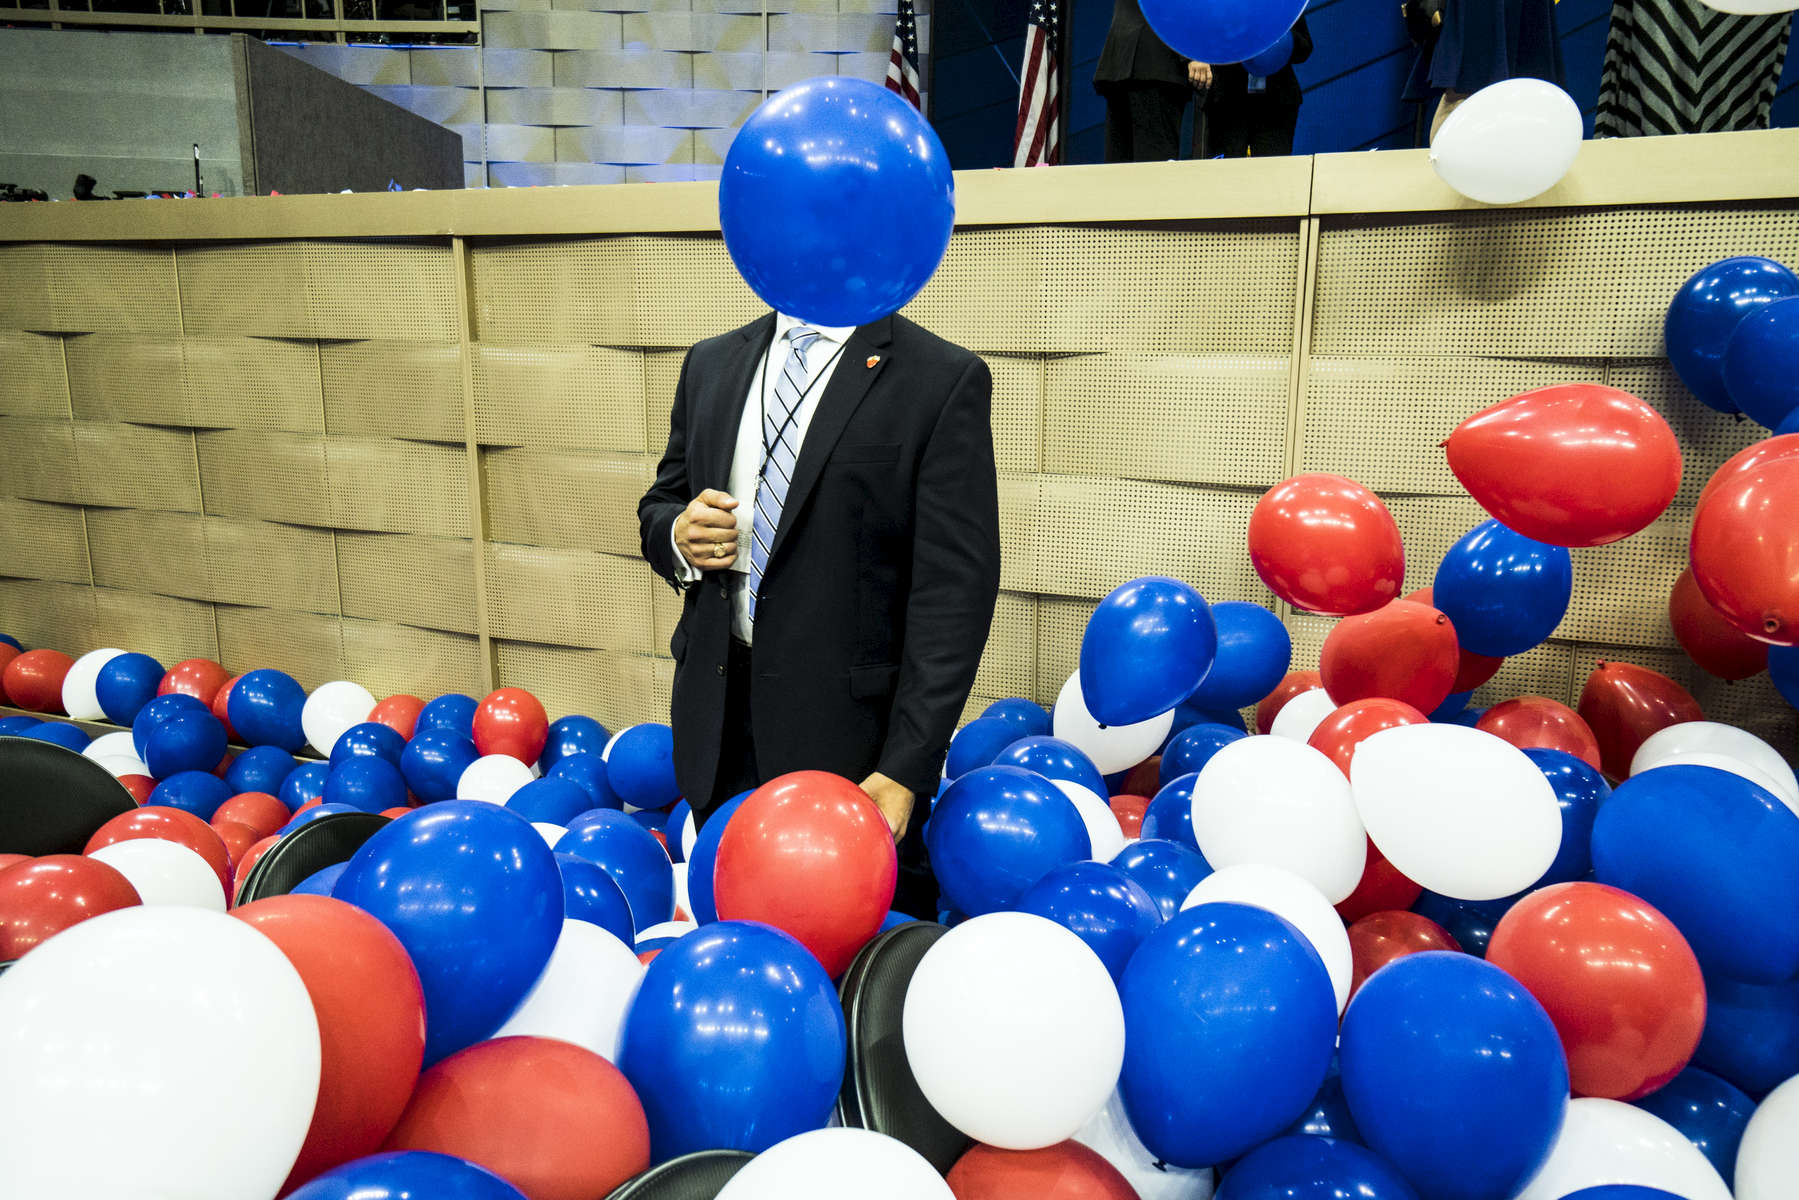 Philadelphia, PA - July 28, 2016: A Secret Service agent stands alert amid a plethora of patriotically colored balloons that were released following Hillary Clinton's keynote address as she accepted the democratic presidential nomination at the DNC on July 28, 2016.